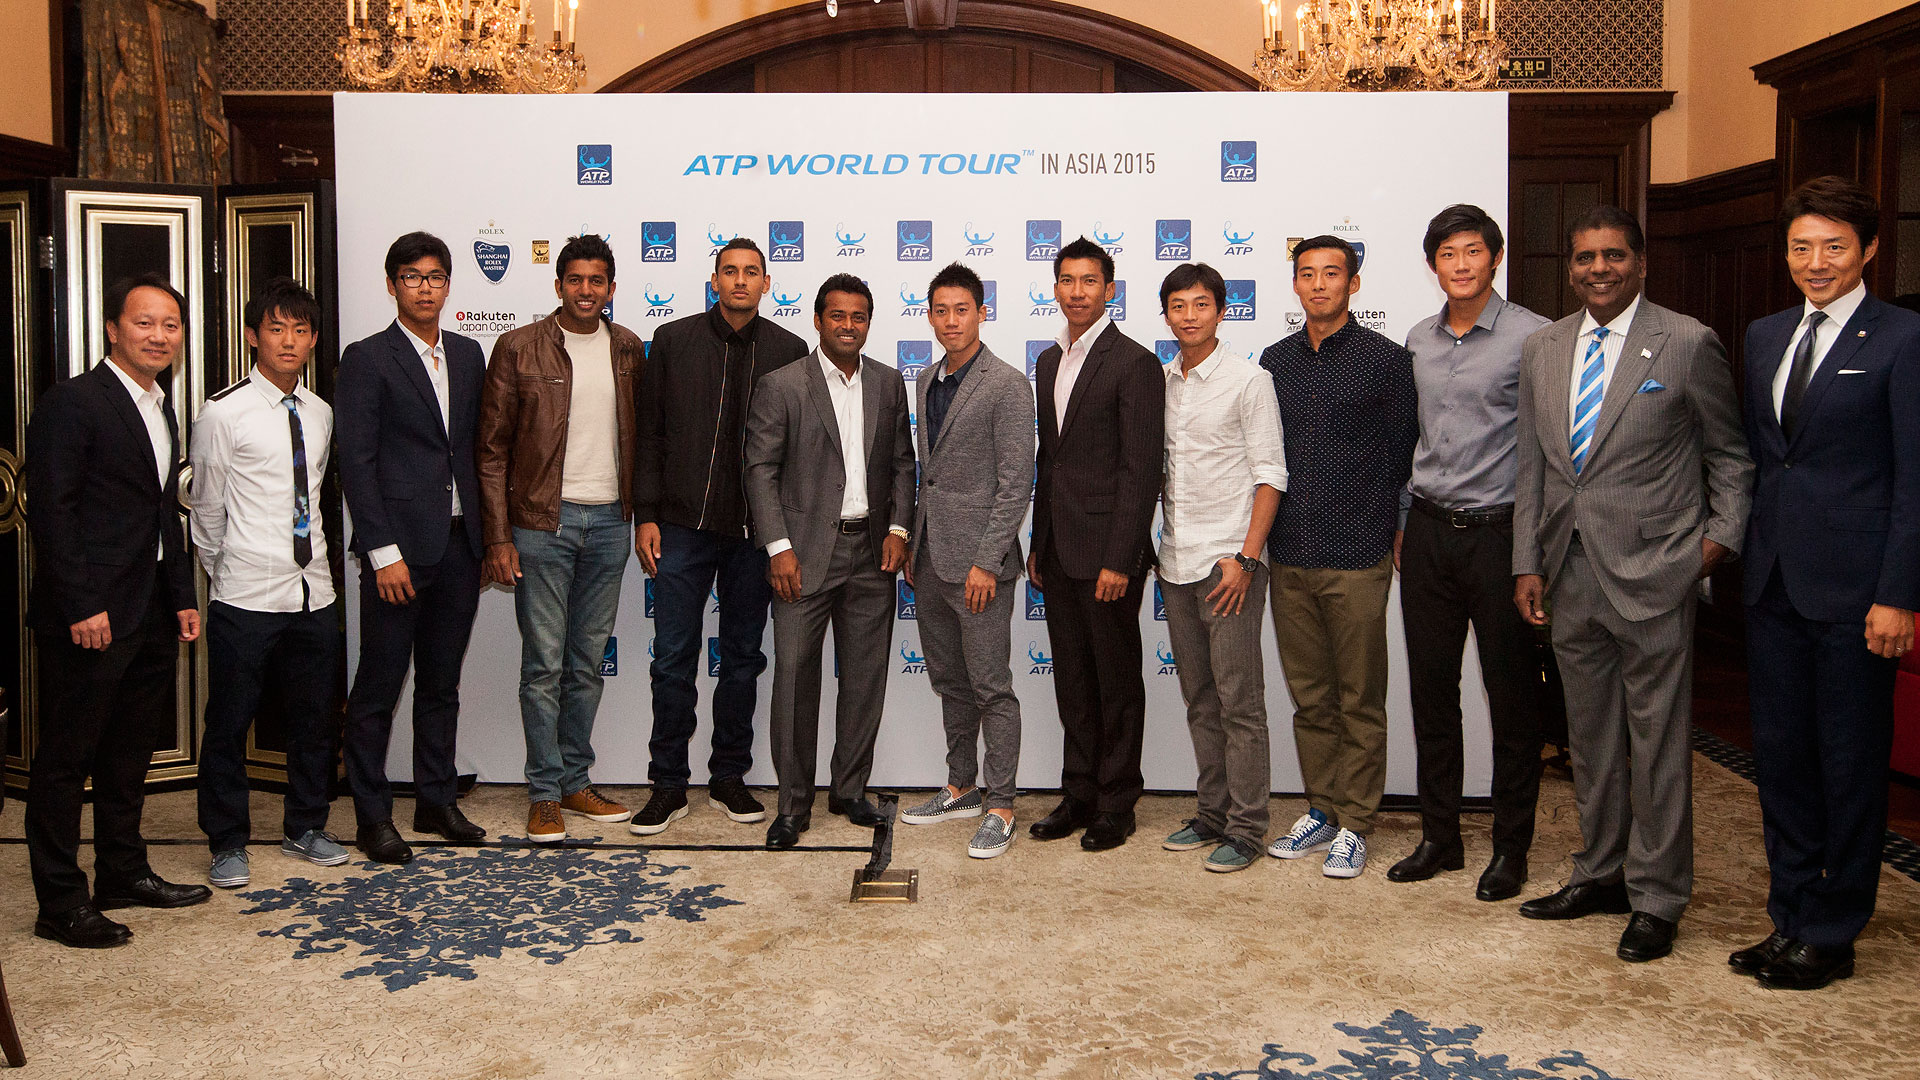 ATP in Asia, tennis celebration